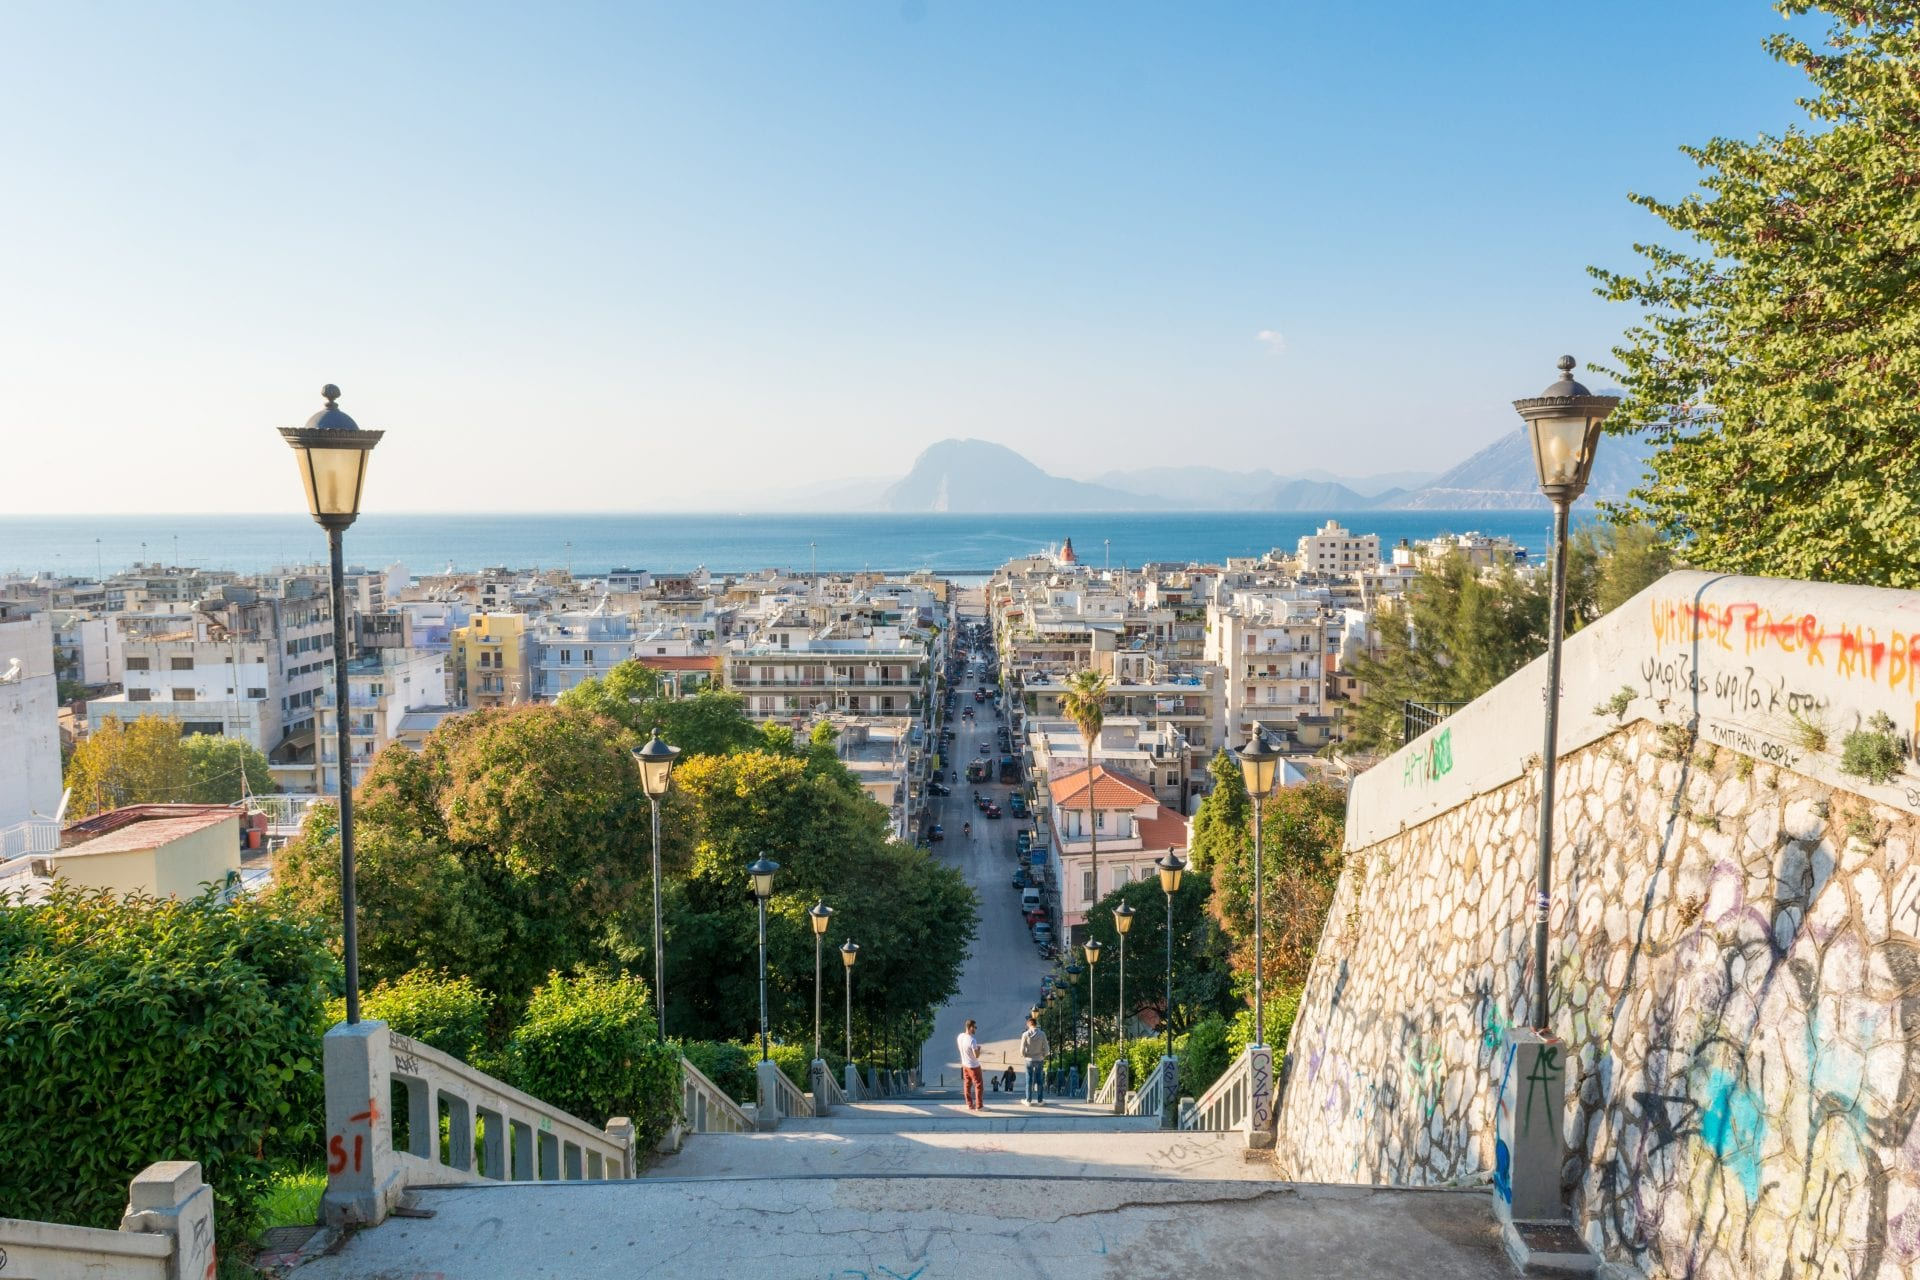 123RF 33722909 Xxl  View Of The City Centre Of Patras From Castle Hill 1 E1508838478186